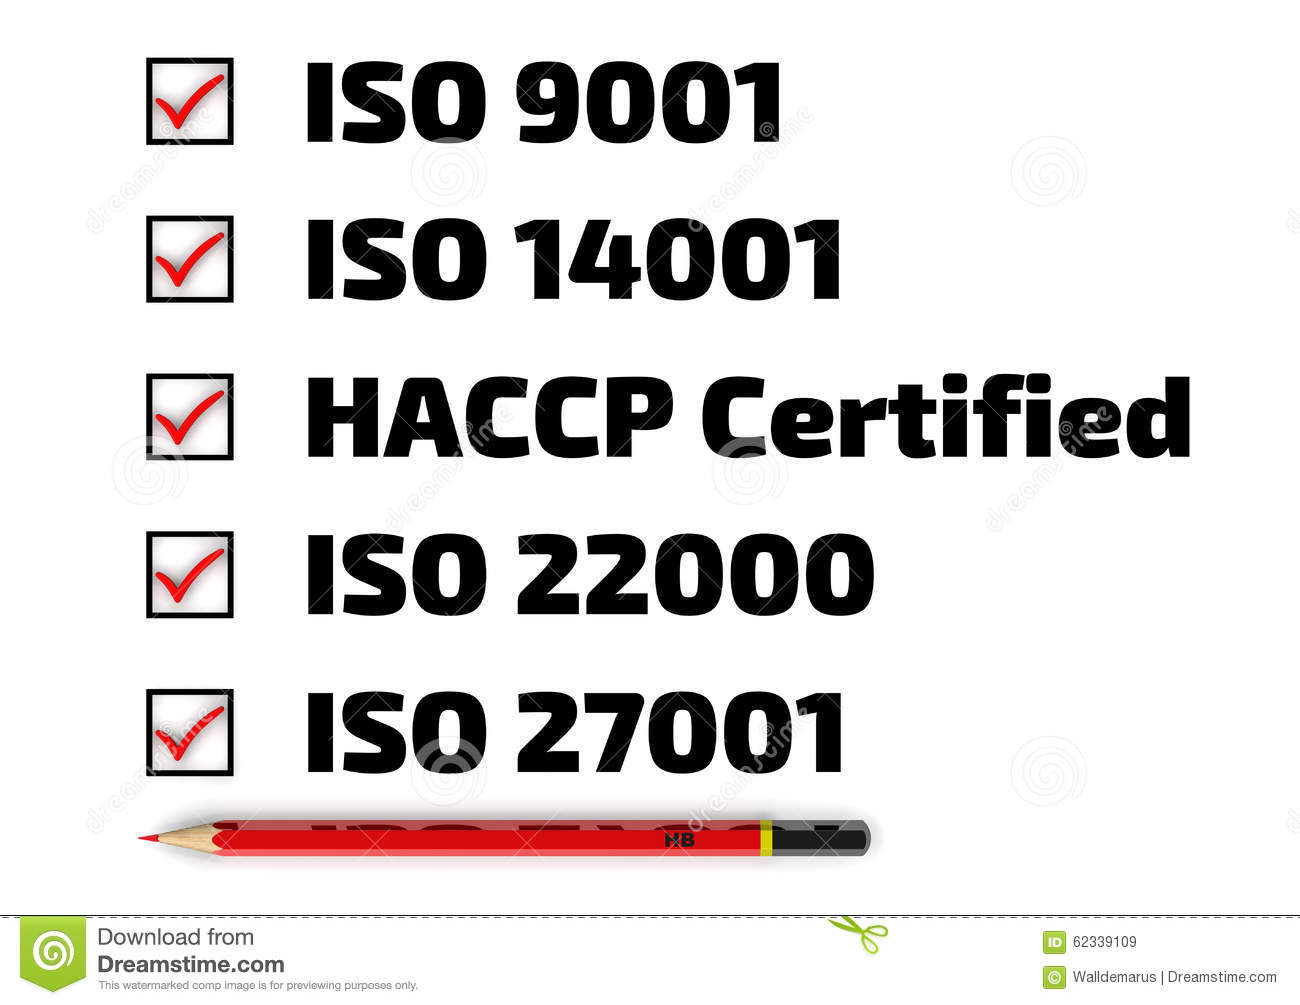 list-iso-standards-haccp-red-pencil-chec